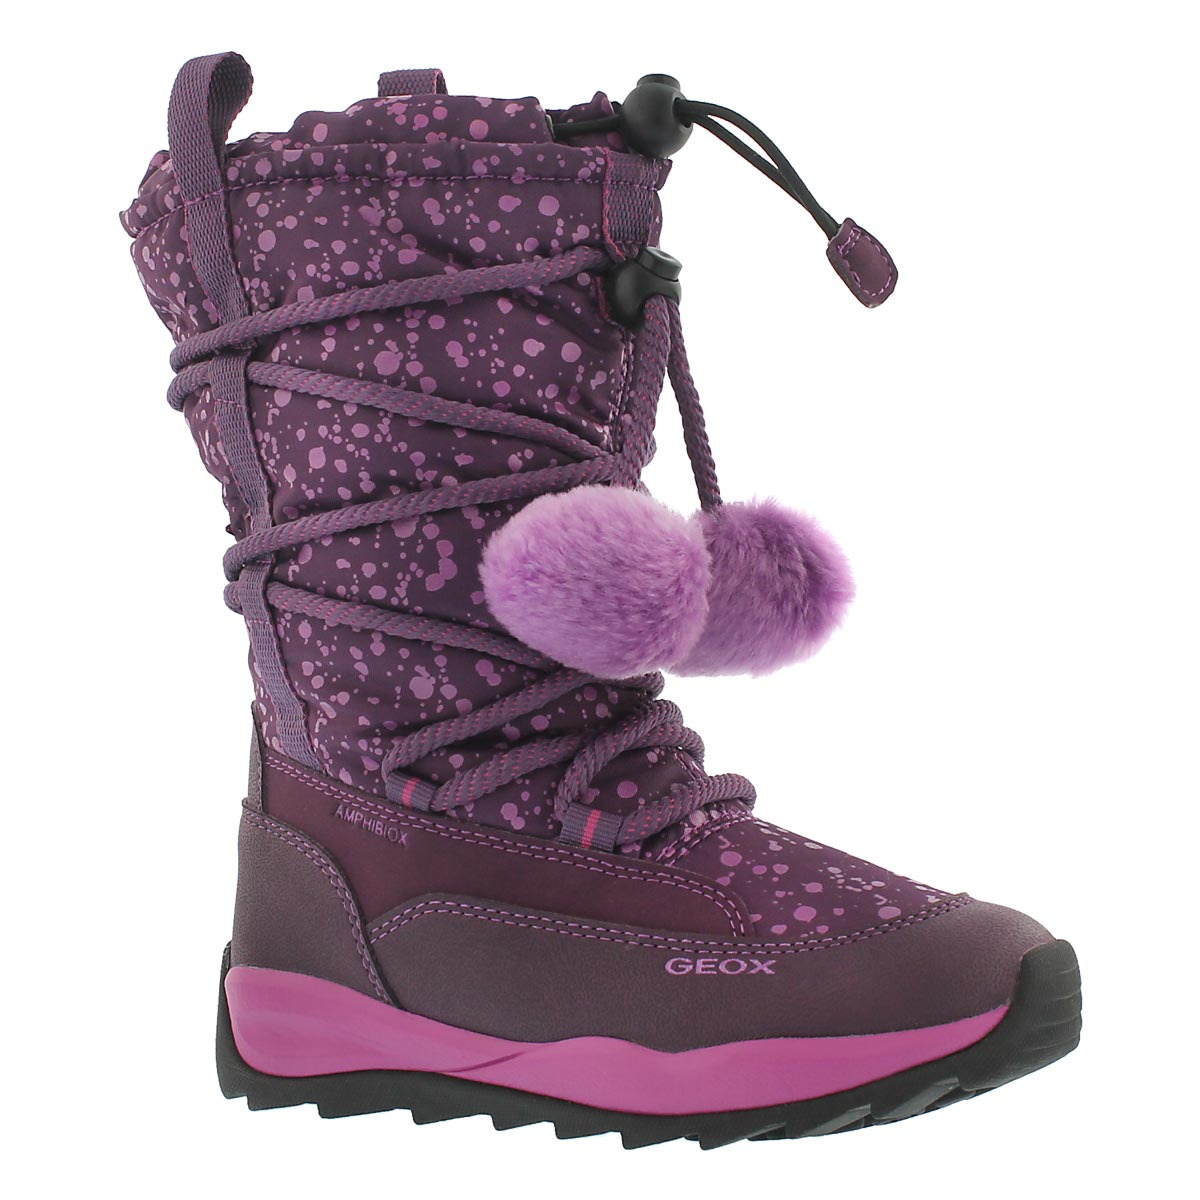 Girls' ORIZONT B ABX dk ppl waterproof snow boots